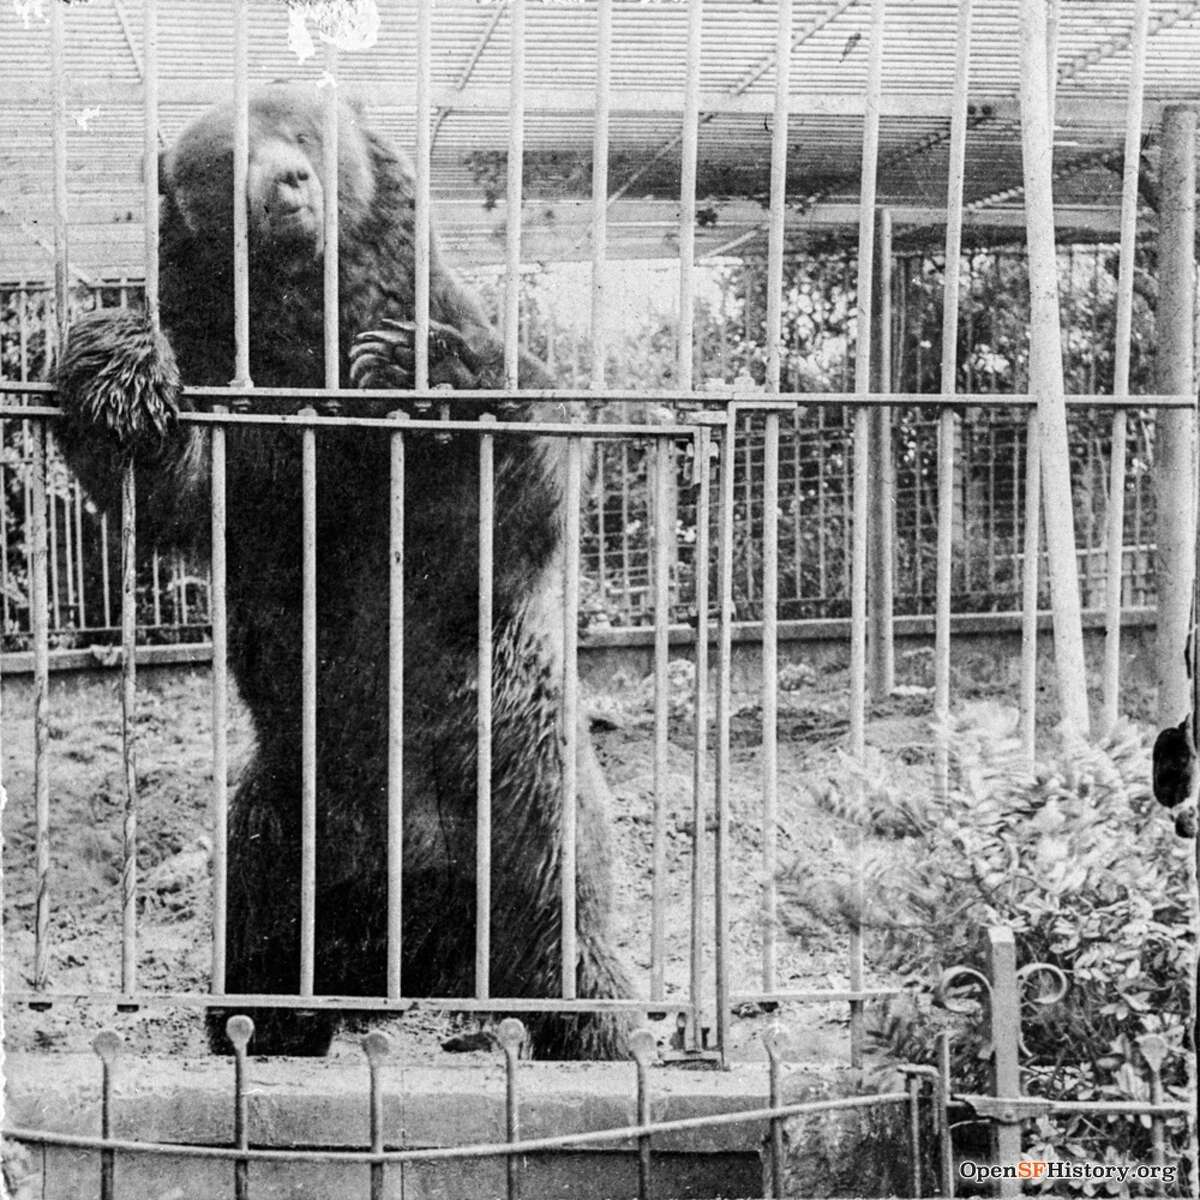 Monarch the bear in captivity in Golden Gate Park, circa 1900.